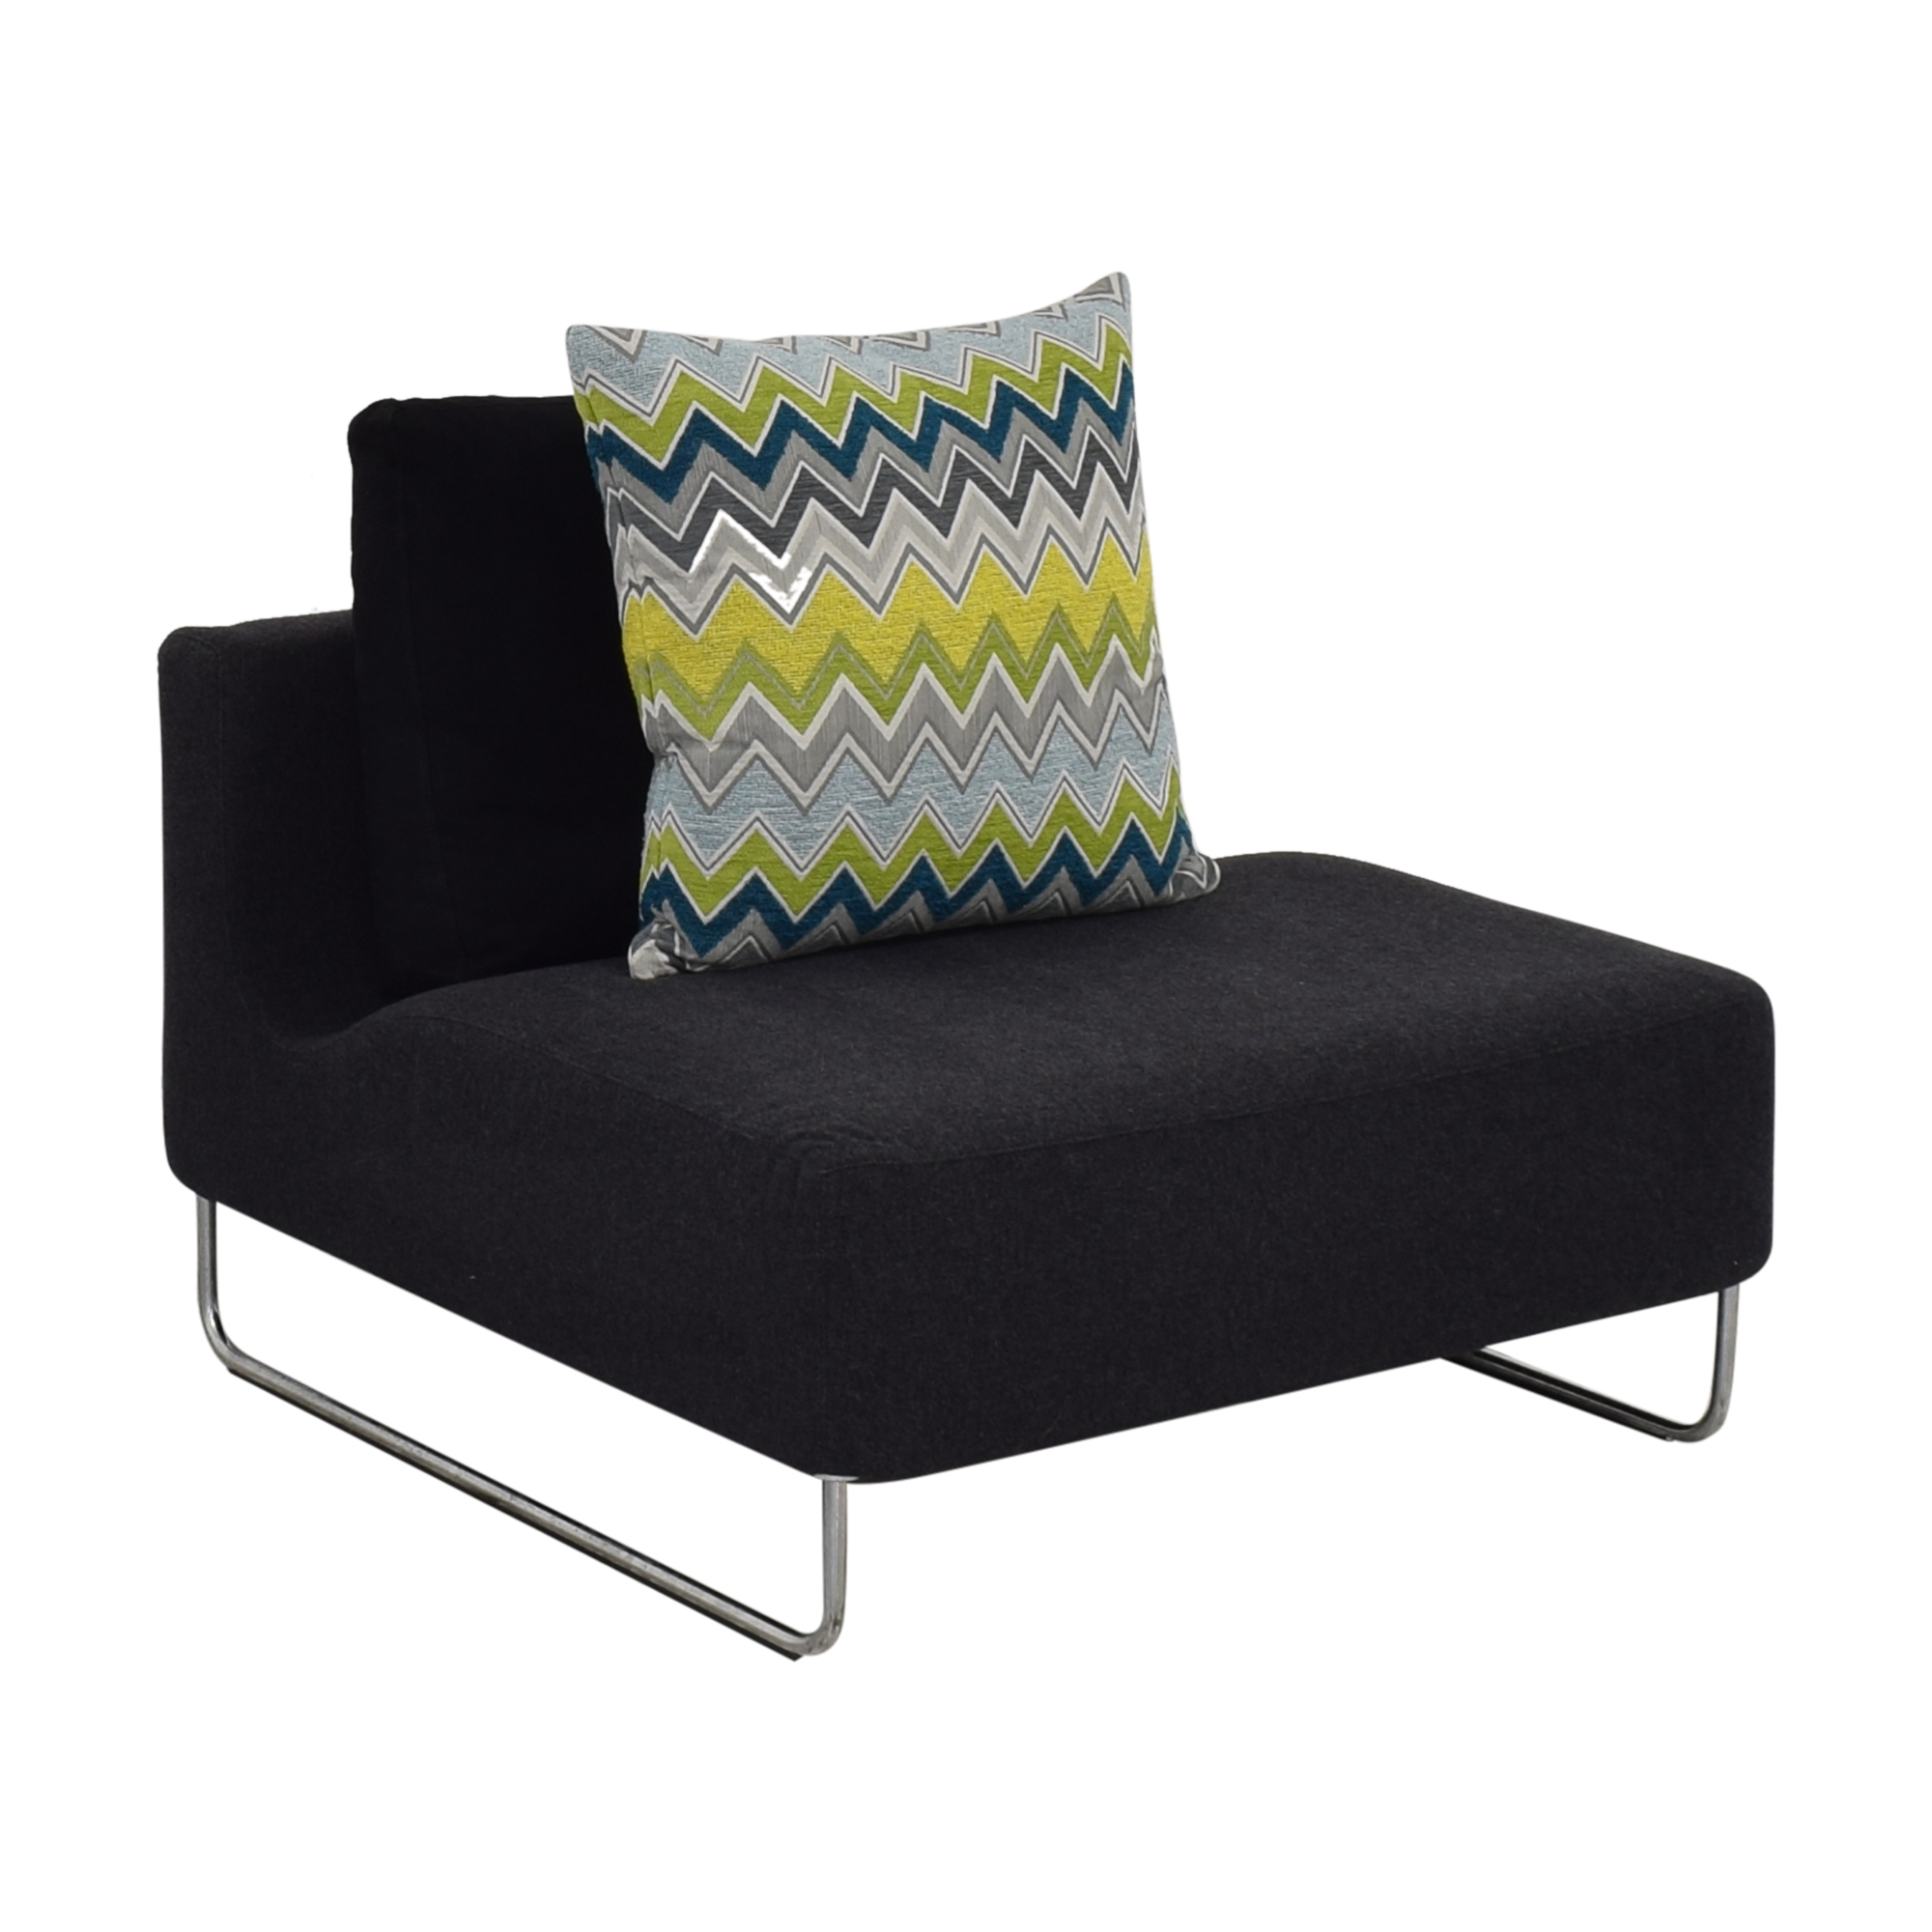 Bensen Canyon Lounge Chair / Accent Chairs